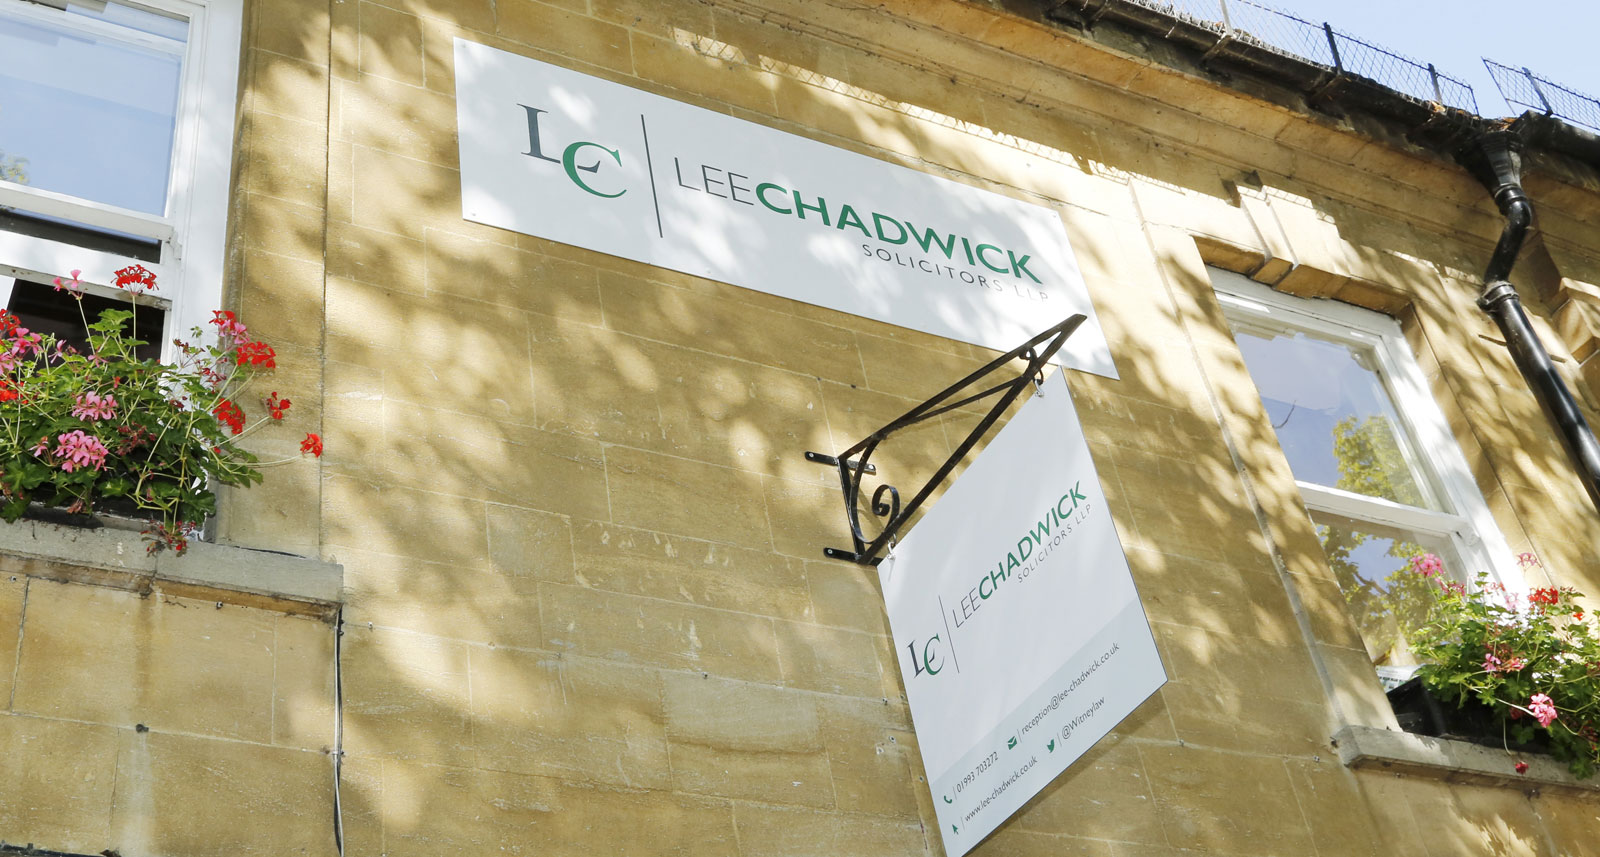 solicitors lee chadwick